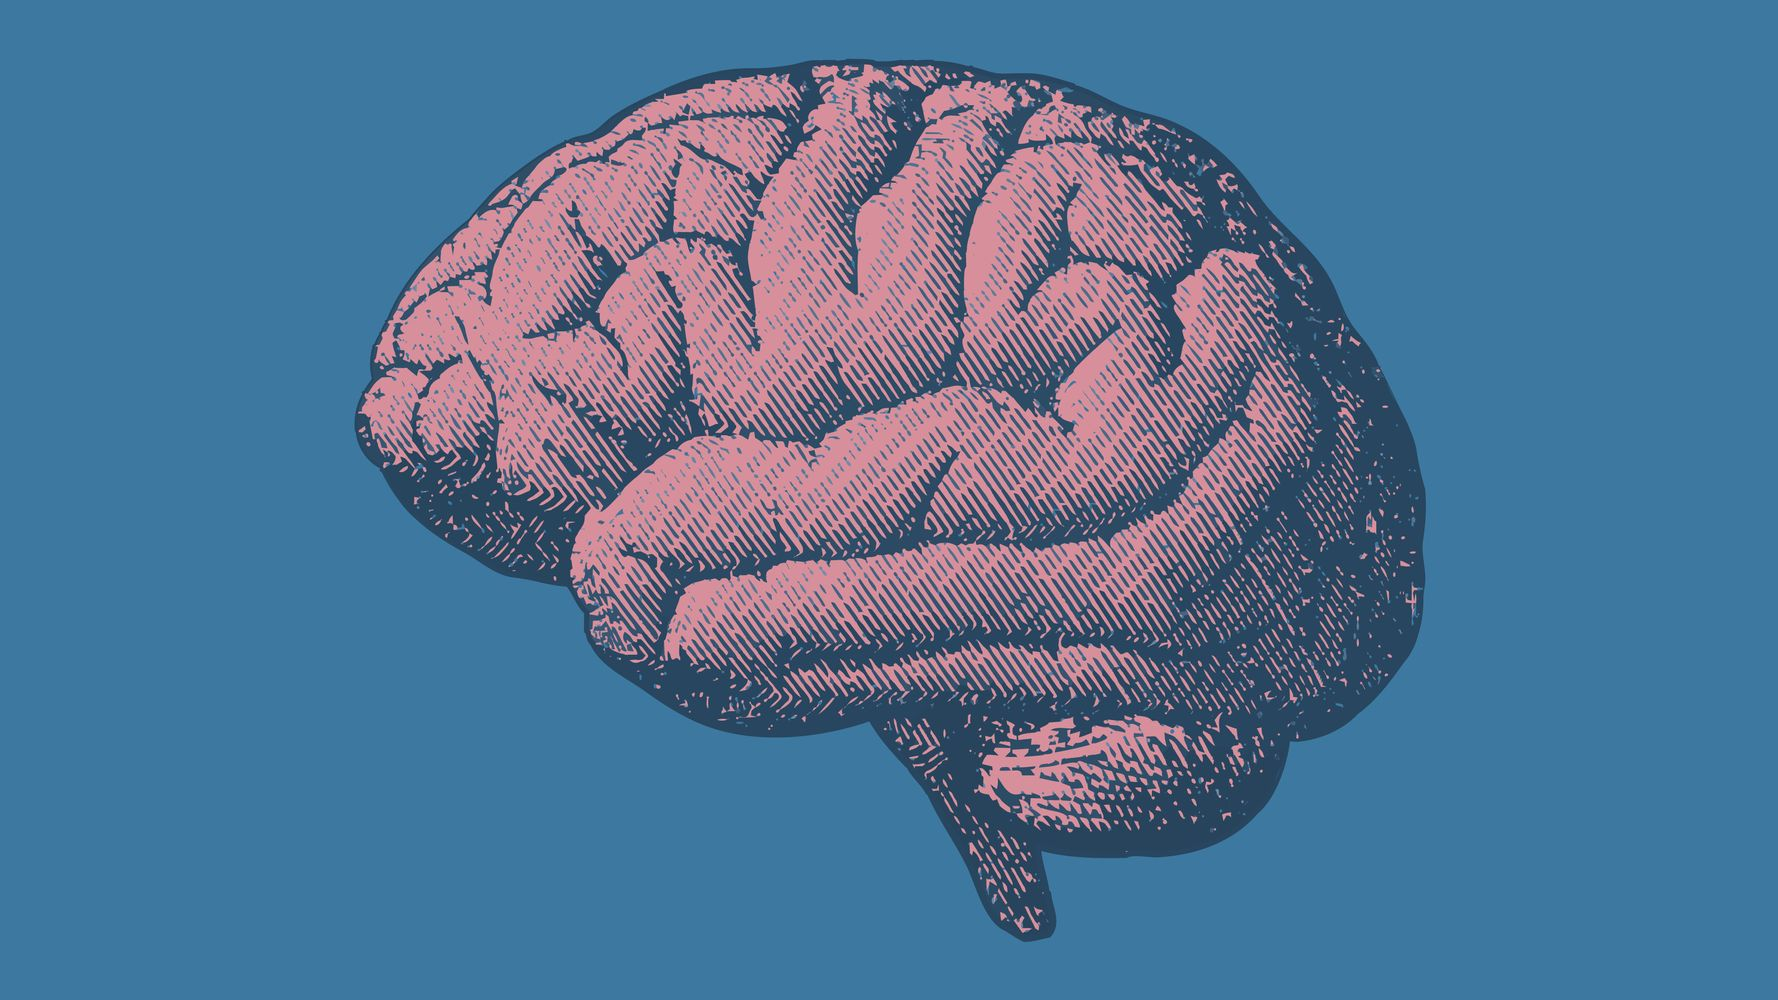 Everything We Know About COVID-19's Impact On The Brain